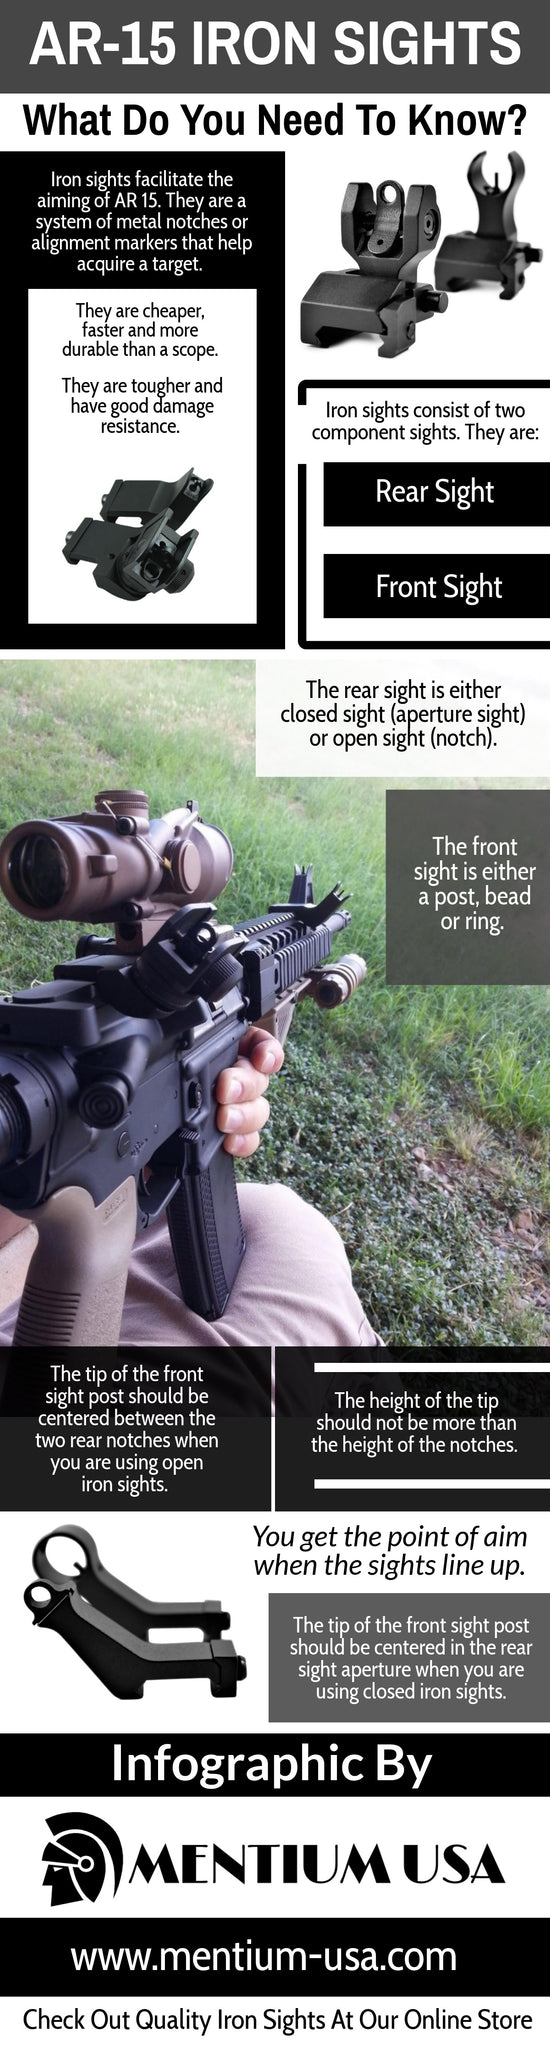 Image showing infographic about Reflex sight